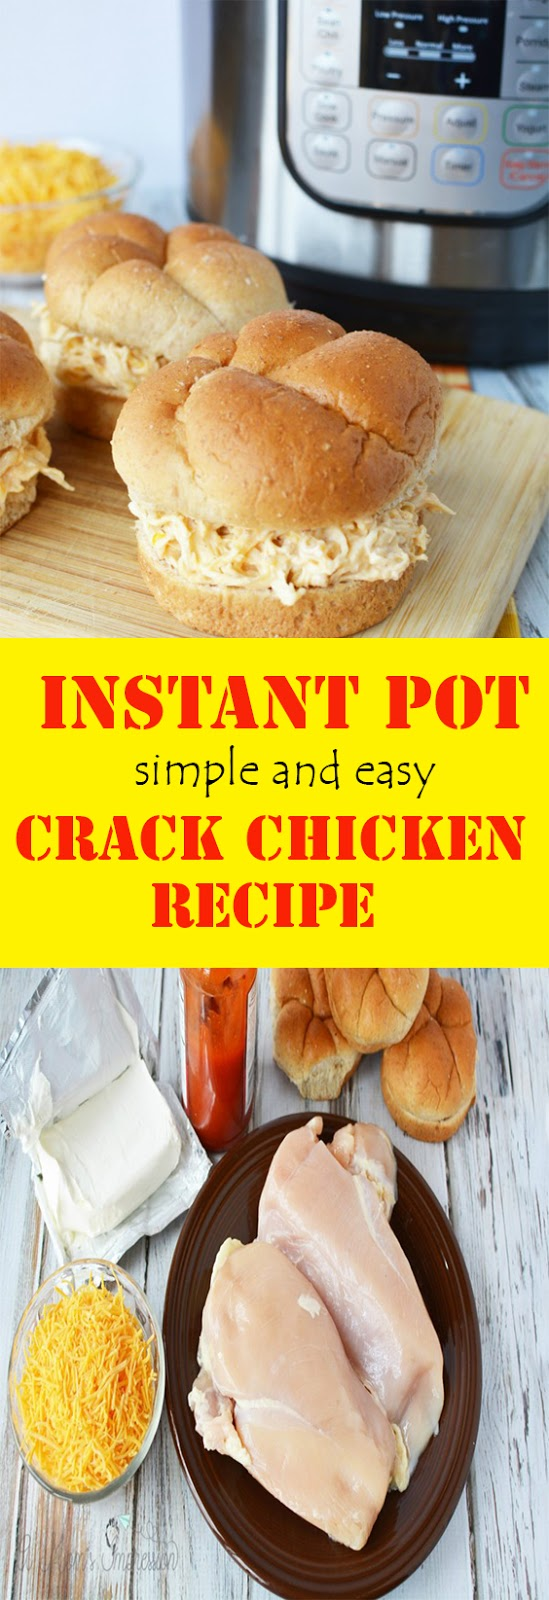 simple and easy INSTANT POT CRACK CHICKEN RECIPE